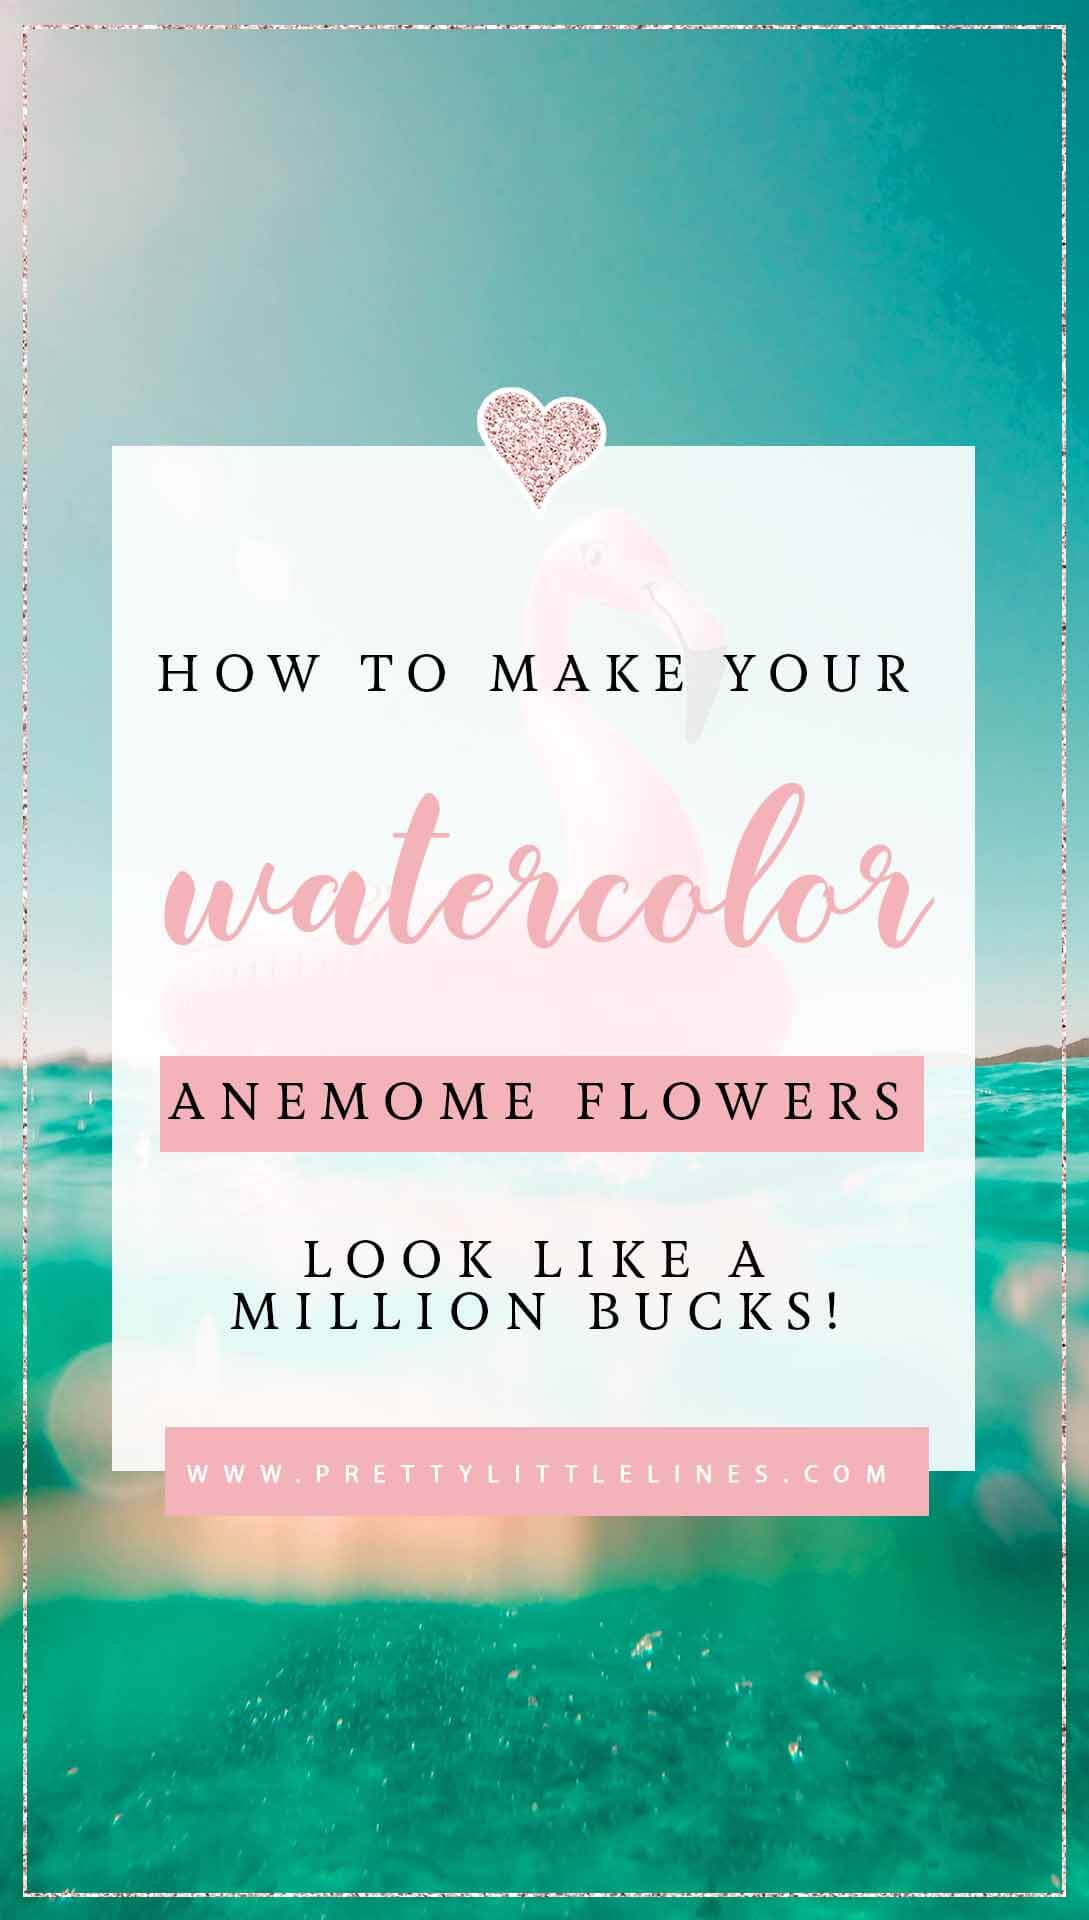 watercolor anemone flowers